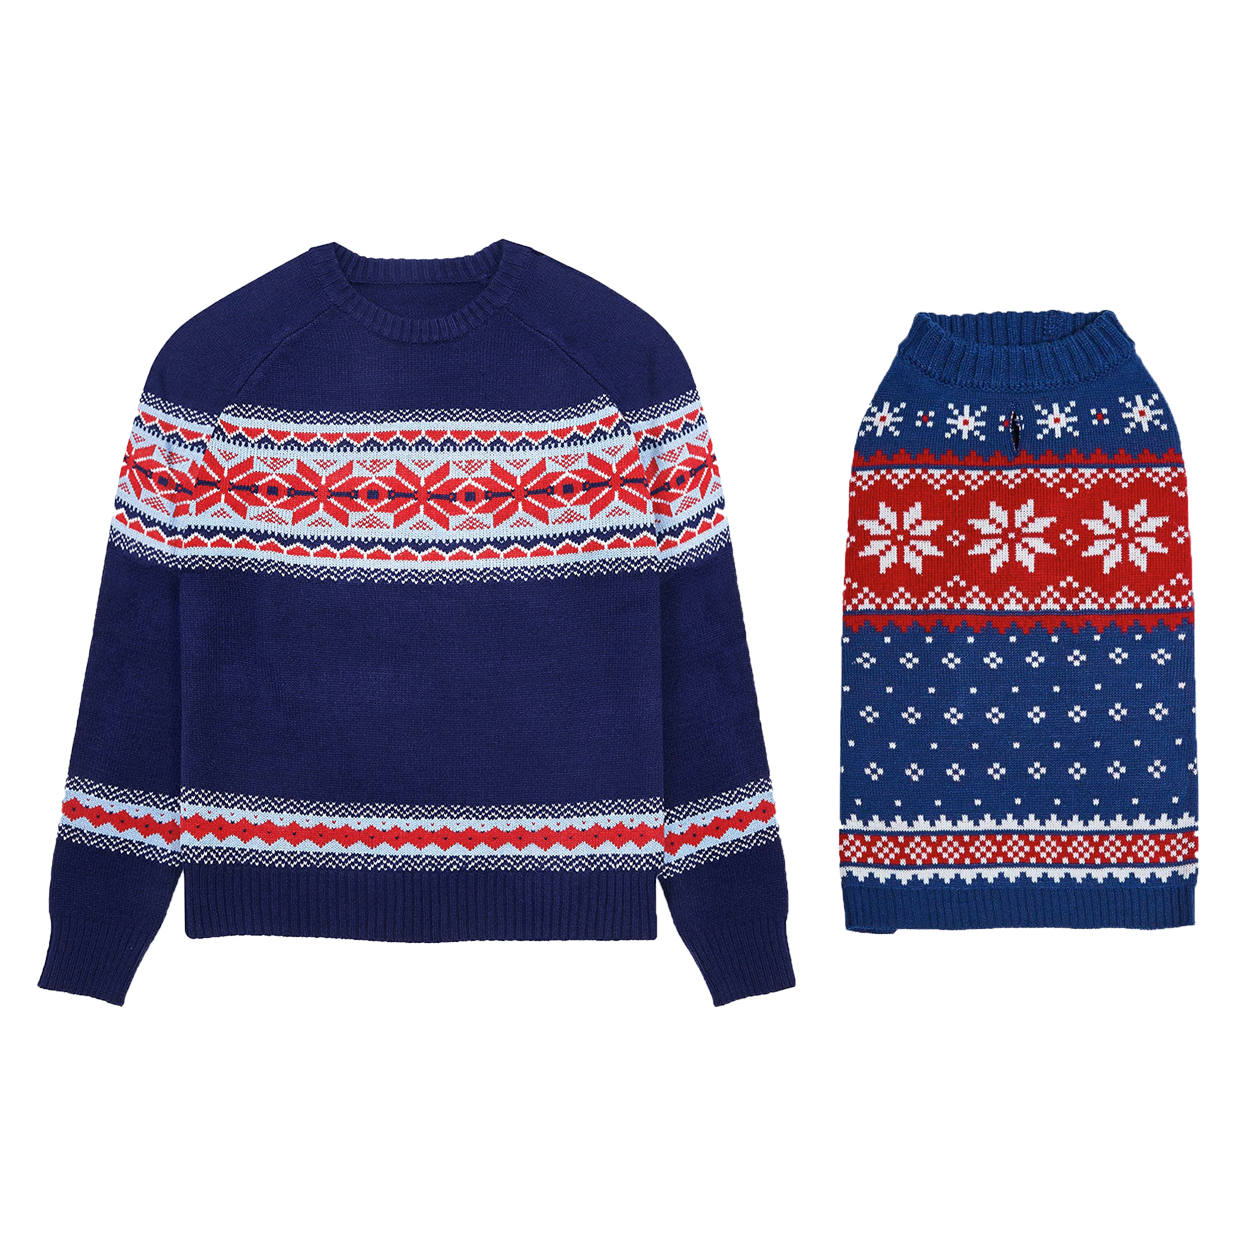 blue-snowflake-matching-sweaters